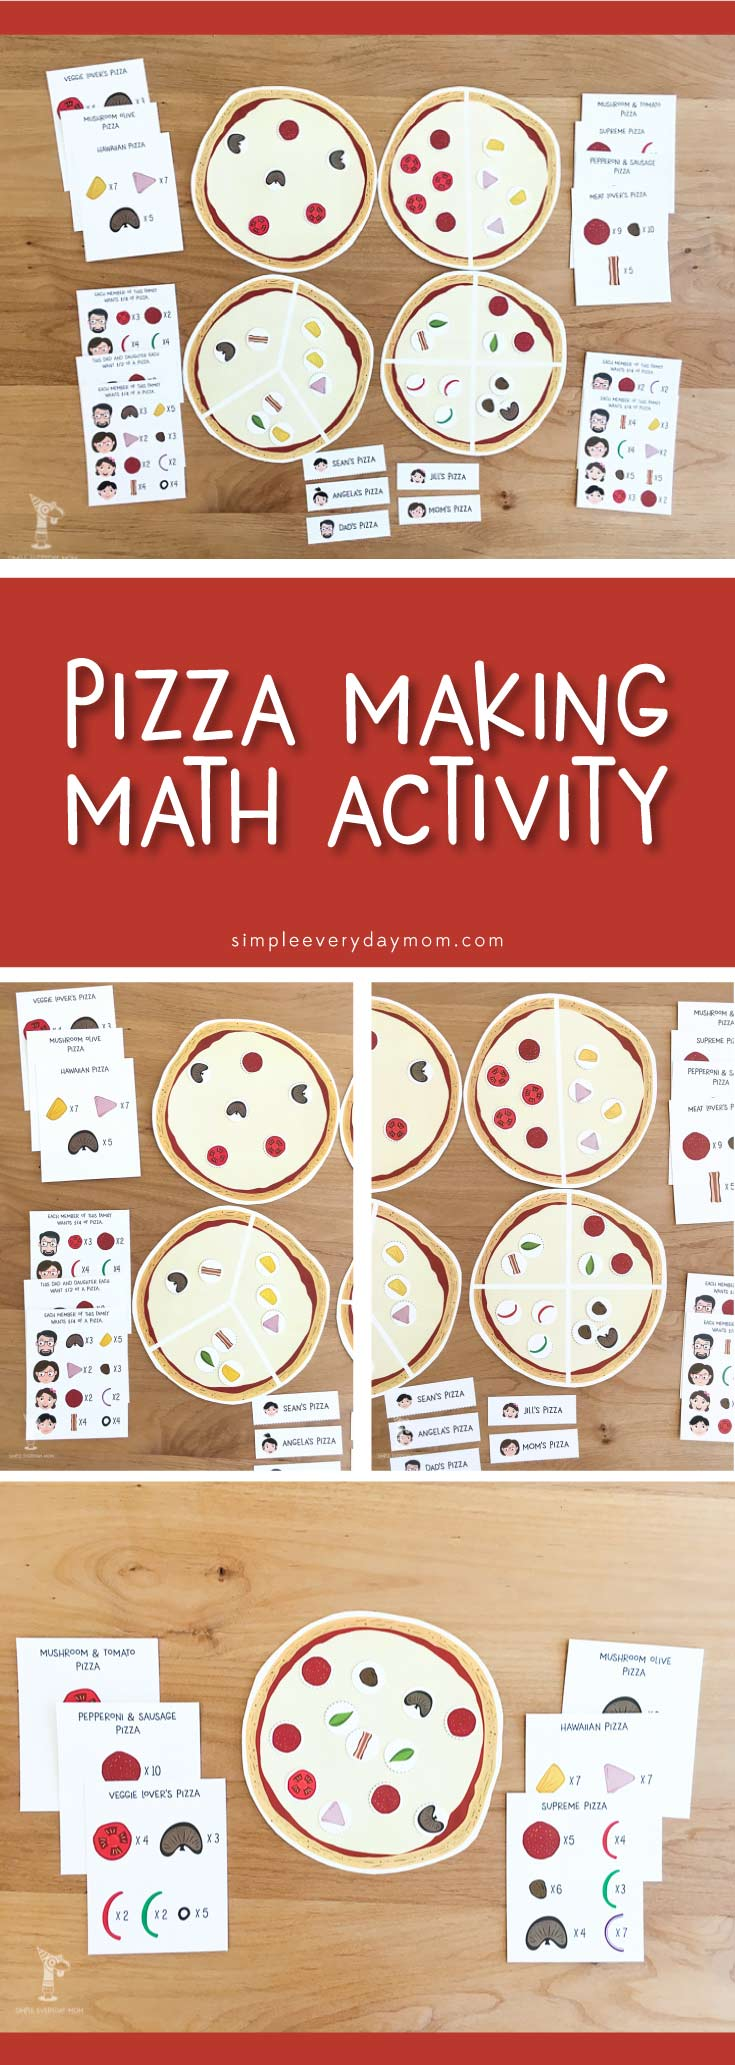 Kids of all ages will love these pizza activities for kids. Teach your child the ideas of matching, counting, fractions and how to follow directions in a fun and engaging way.